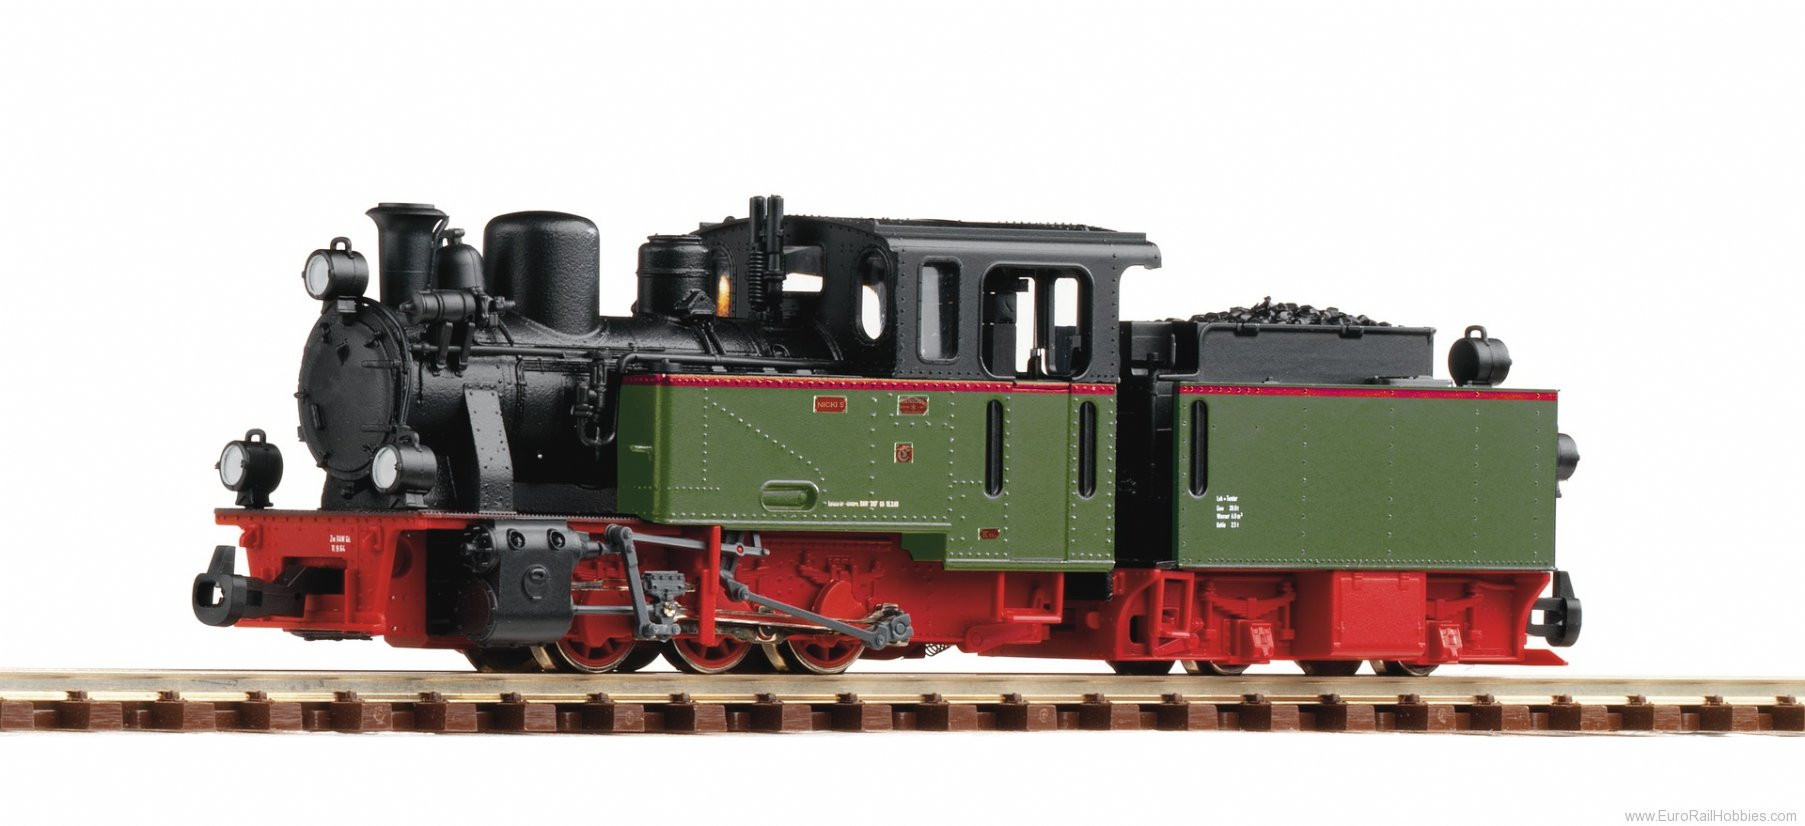 Roco 33237 Narrow gauge steam locomotive Nicki S